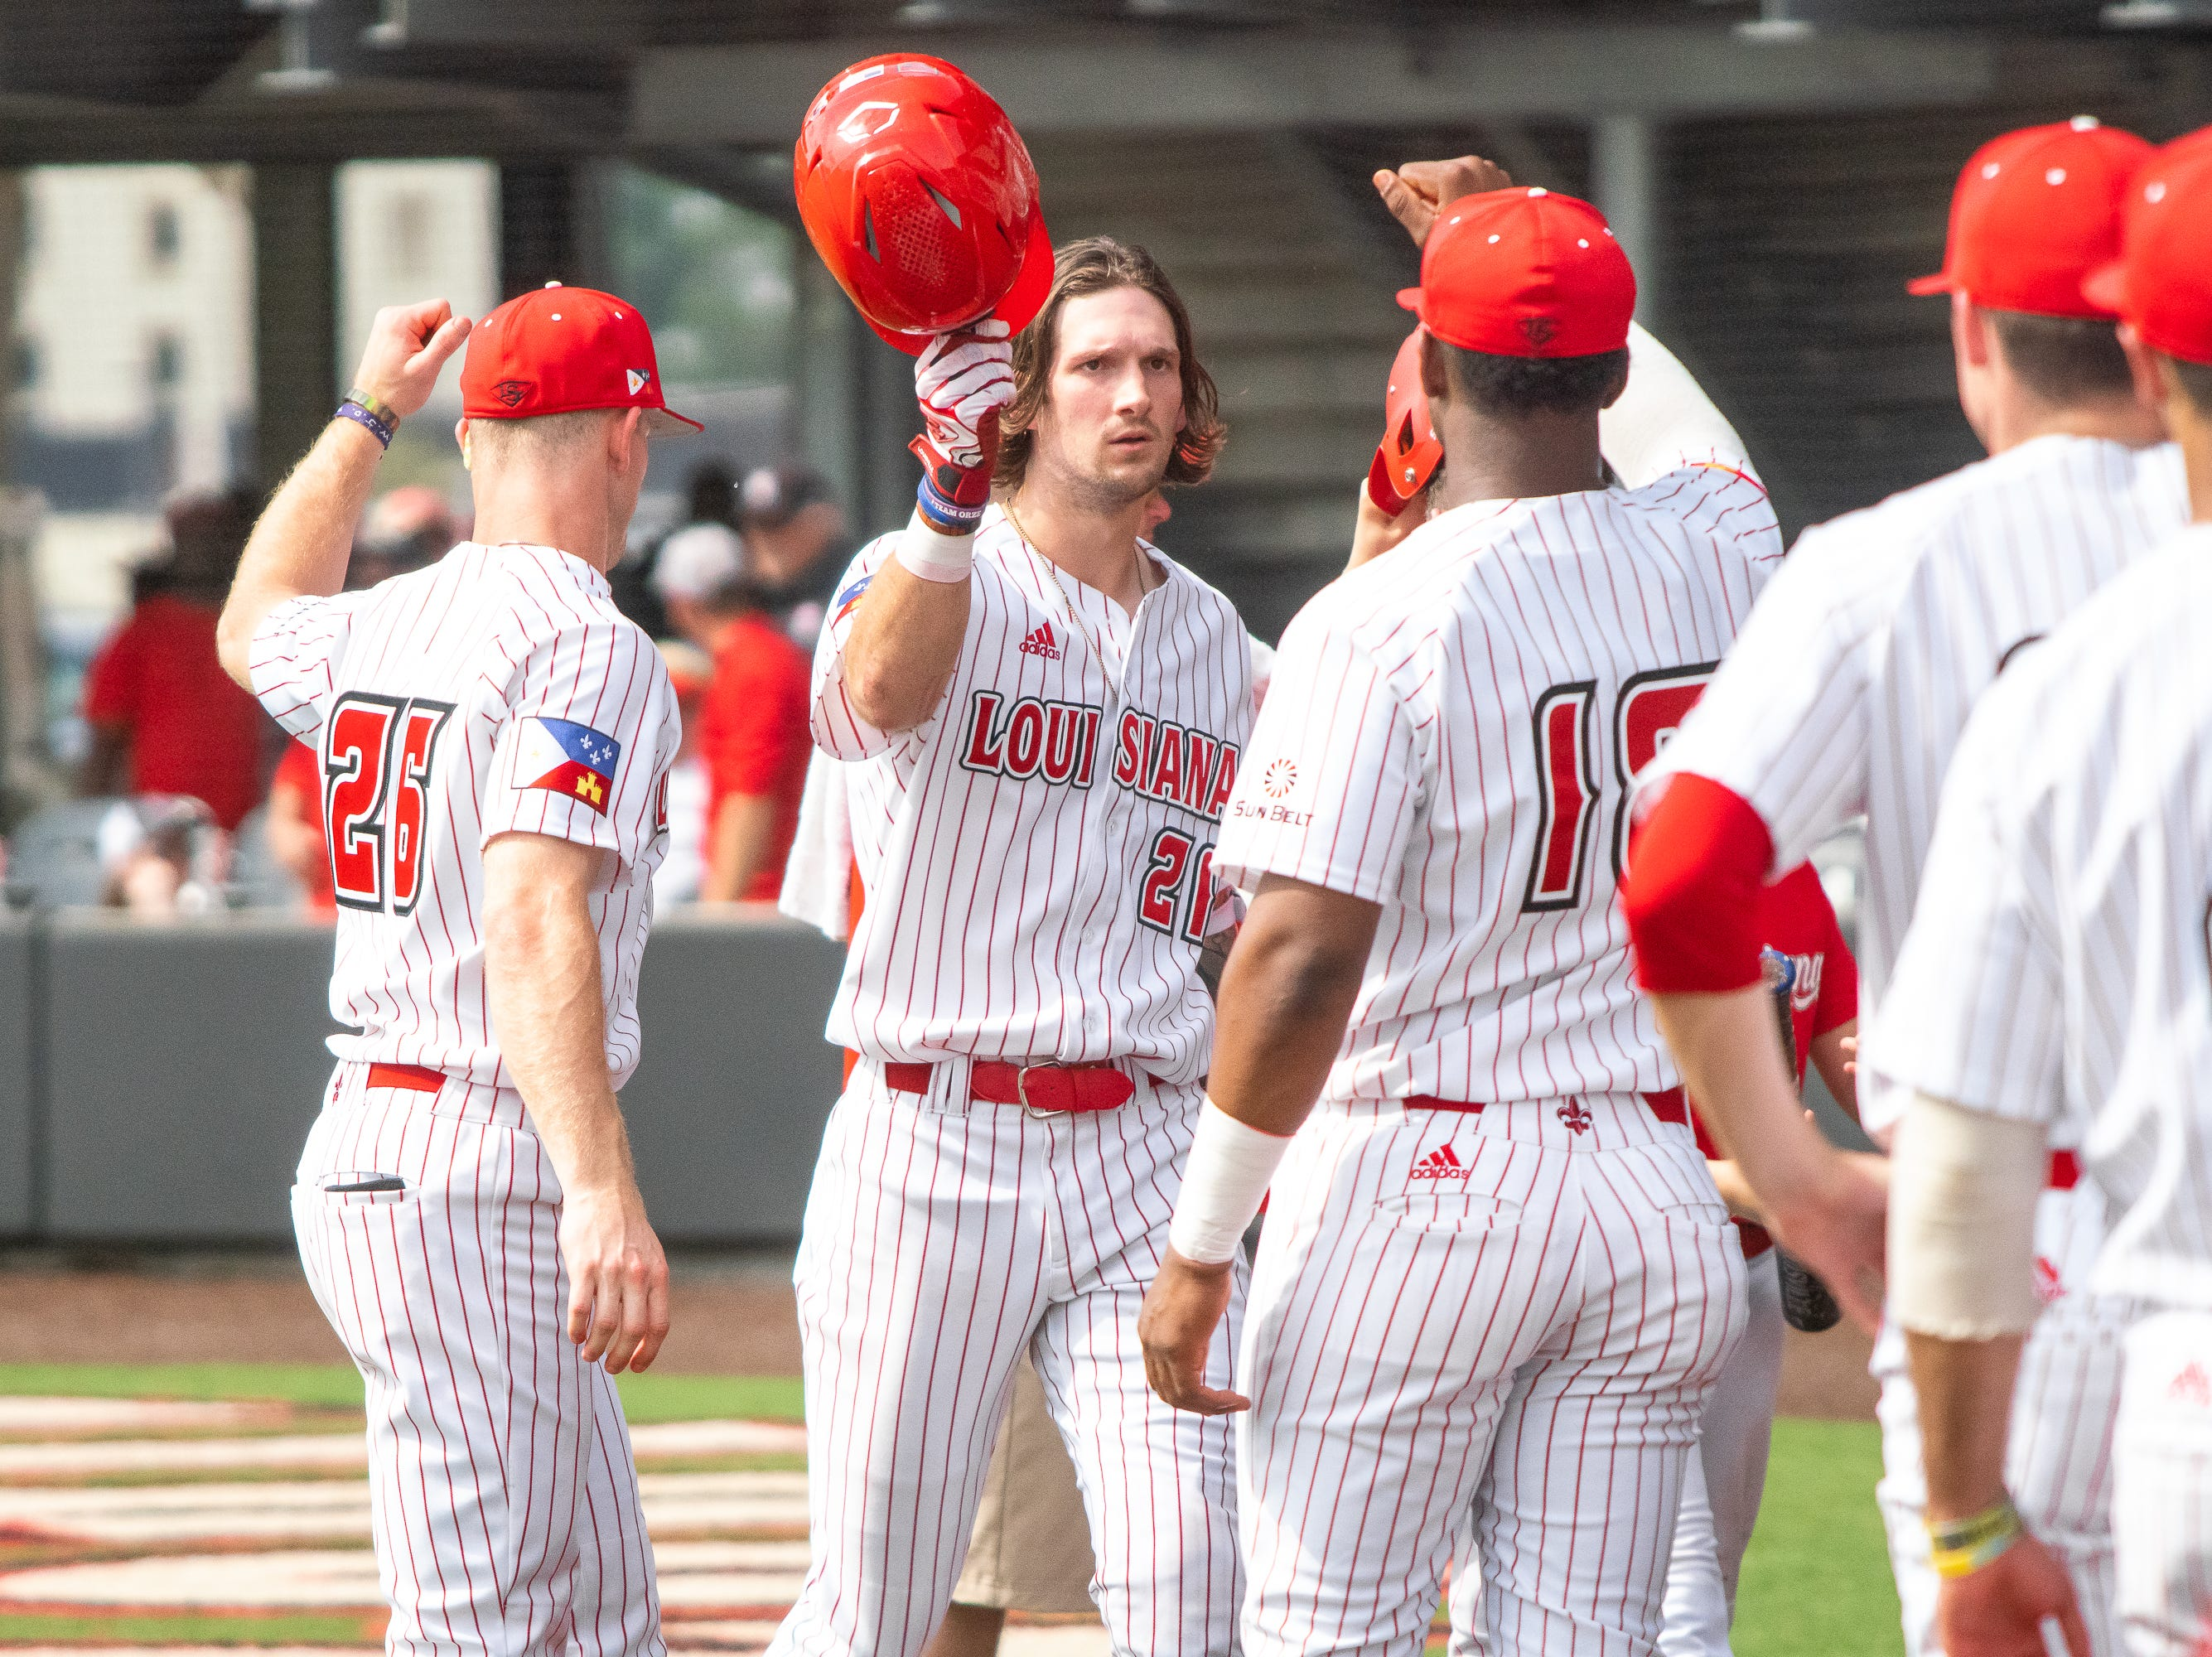 UL's dugout congratulates Orynn Veillon after his homerun score as the Ragin' Cajuns take on the Loyola Marymount Lions at M.L. Tigue Moore Field on March 10, 2019.